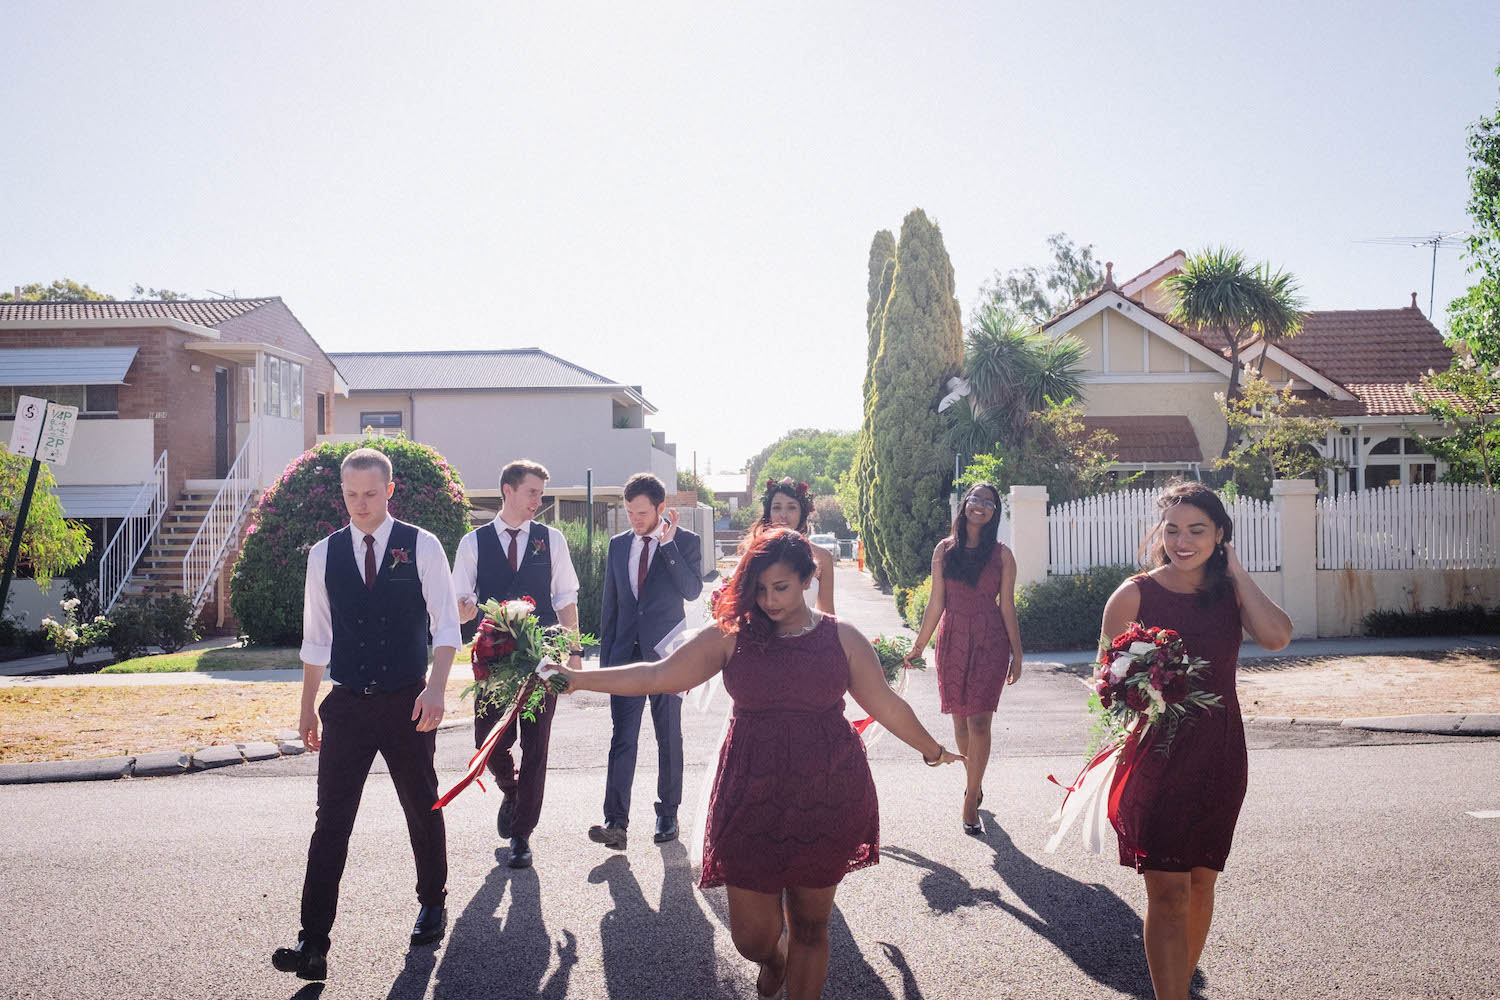 Candid bridal party portrait taken in Perth's suburbs by Rhianna May Wedding Photography